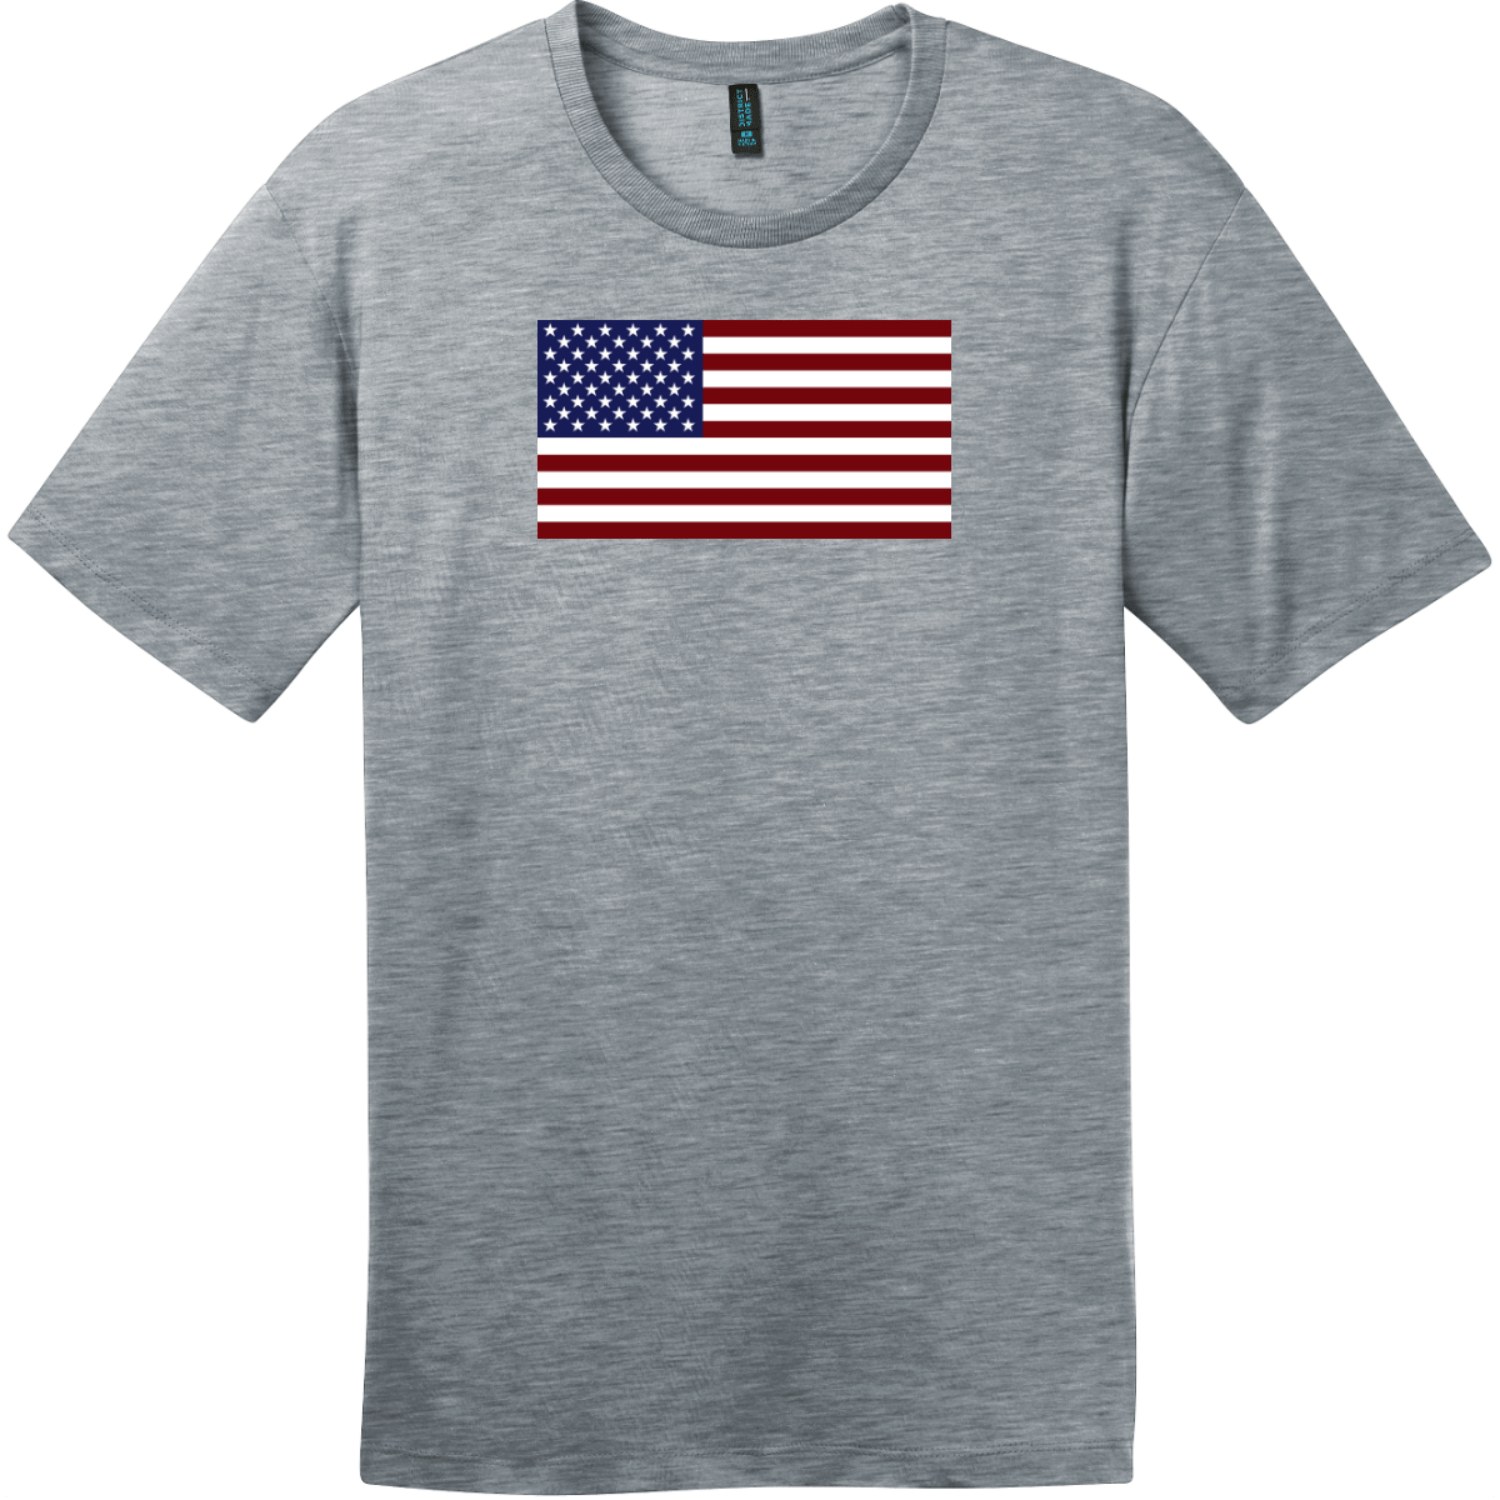 United States of America Flag T-Shirt Heathered Steel District Perfect Weight Tee DT104